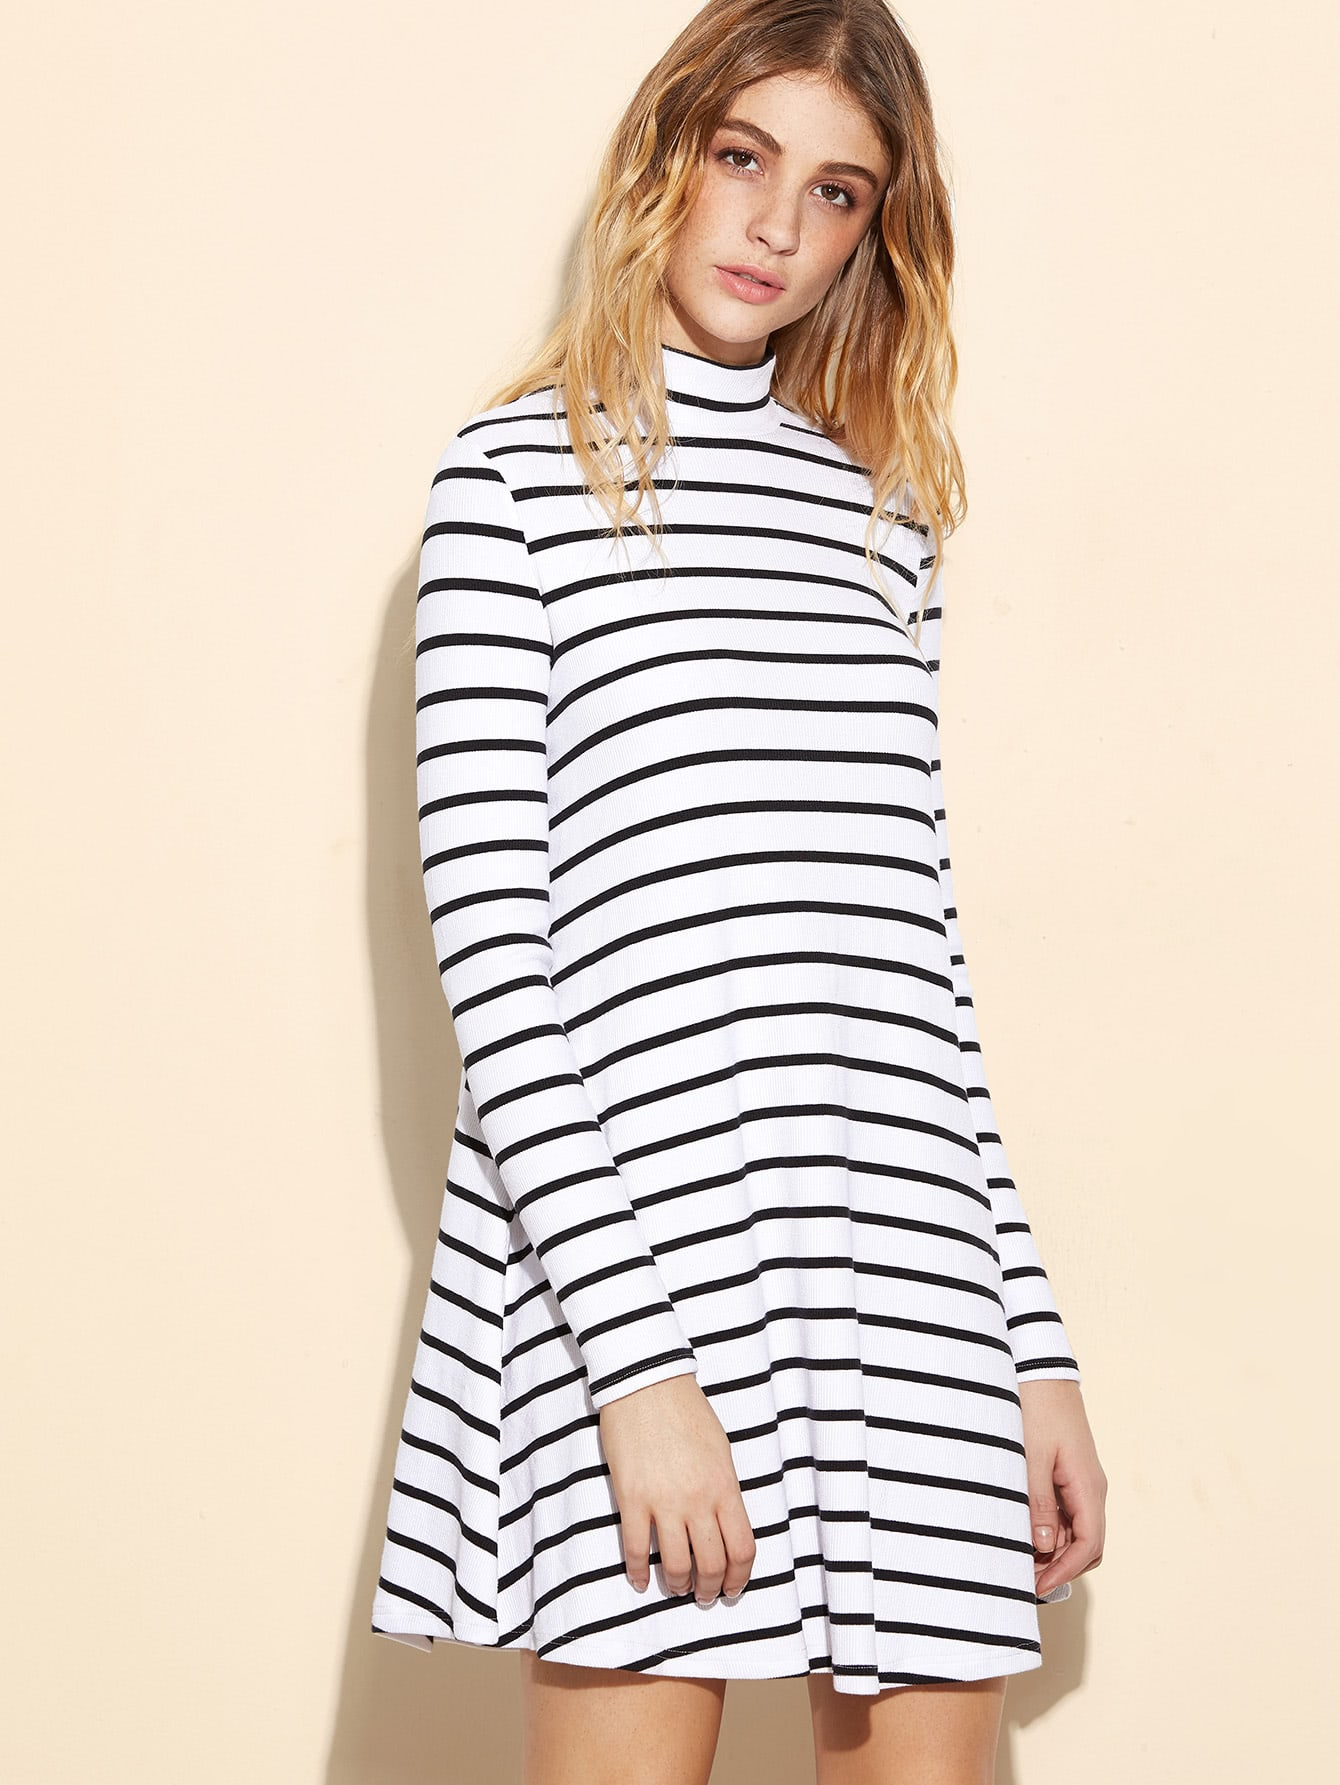 White Striped Ribbed Knit Swing Dress dress161110453